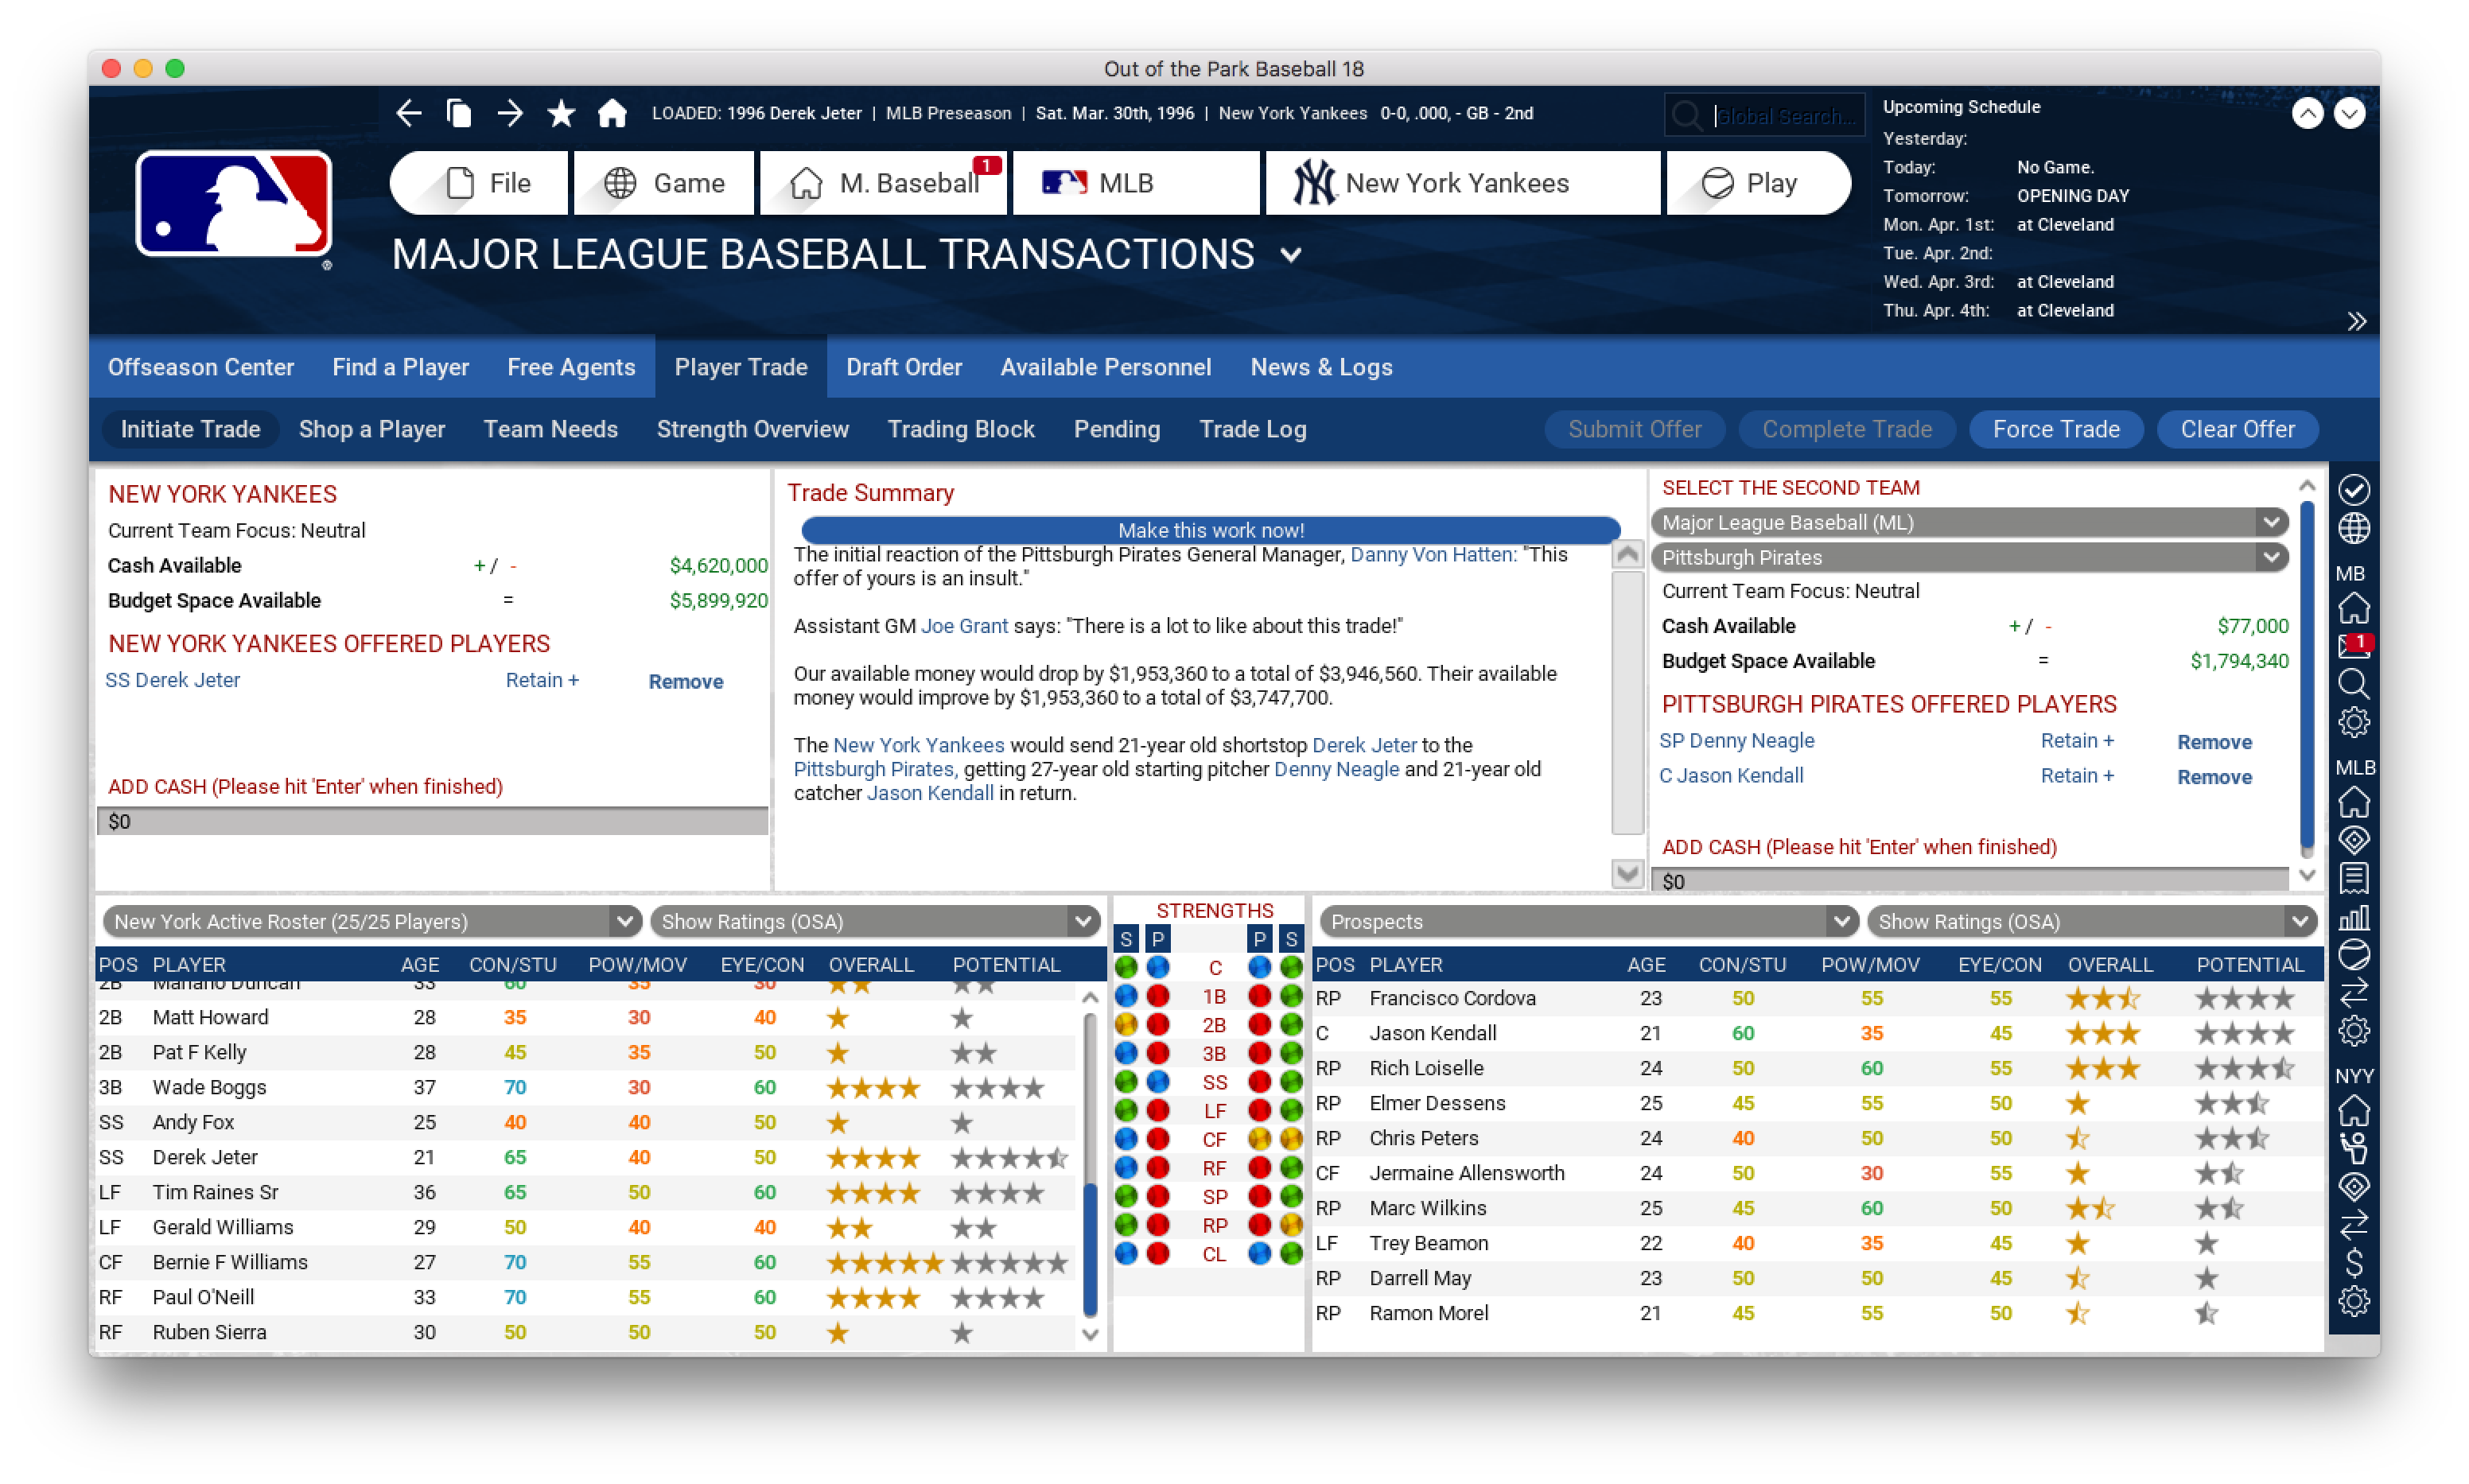 Jeter trade with Kendall added